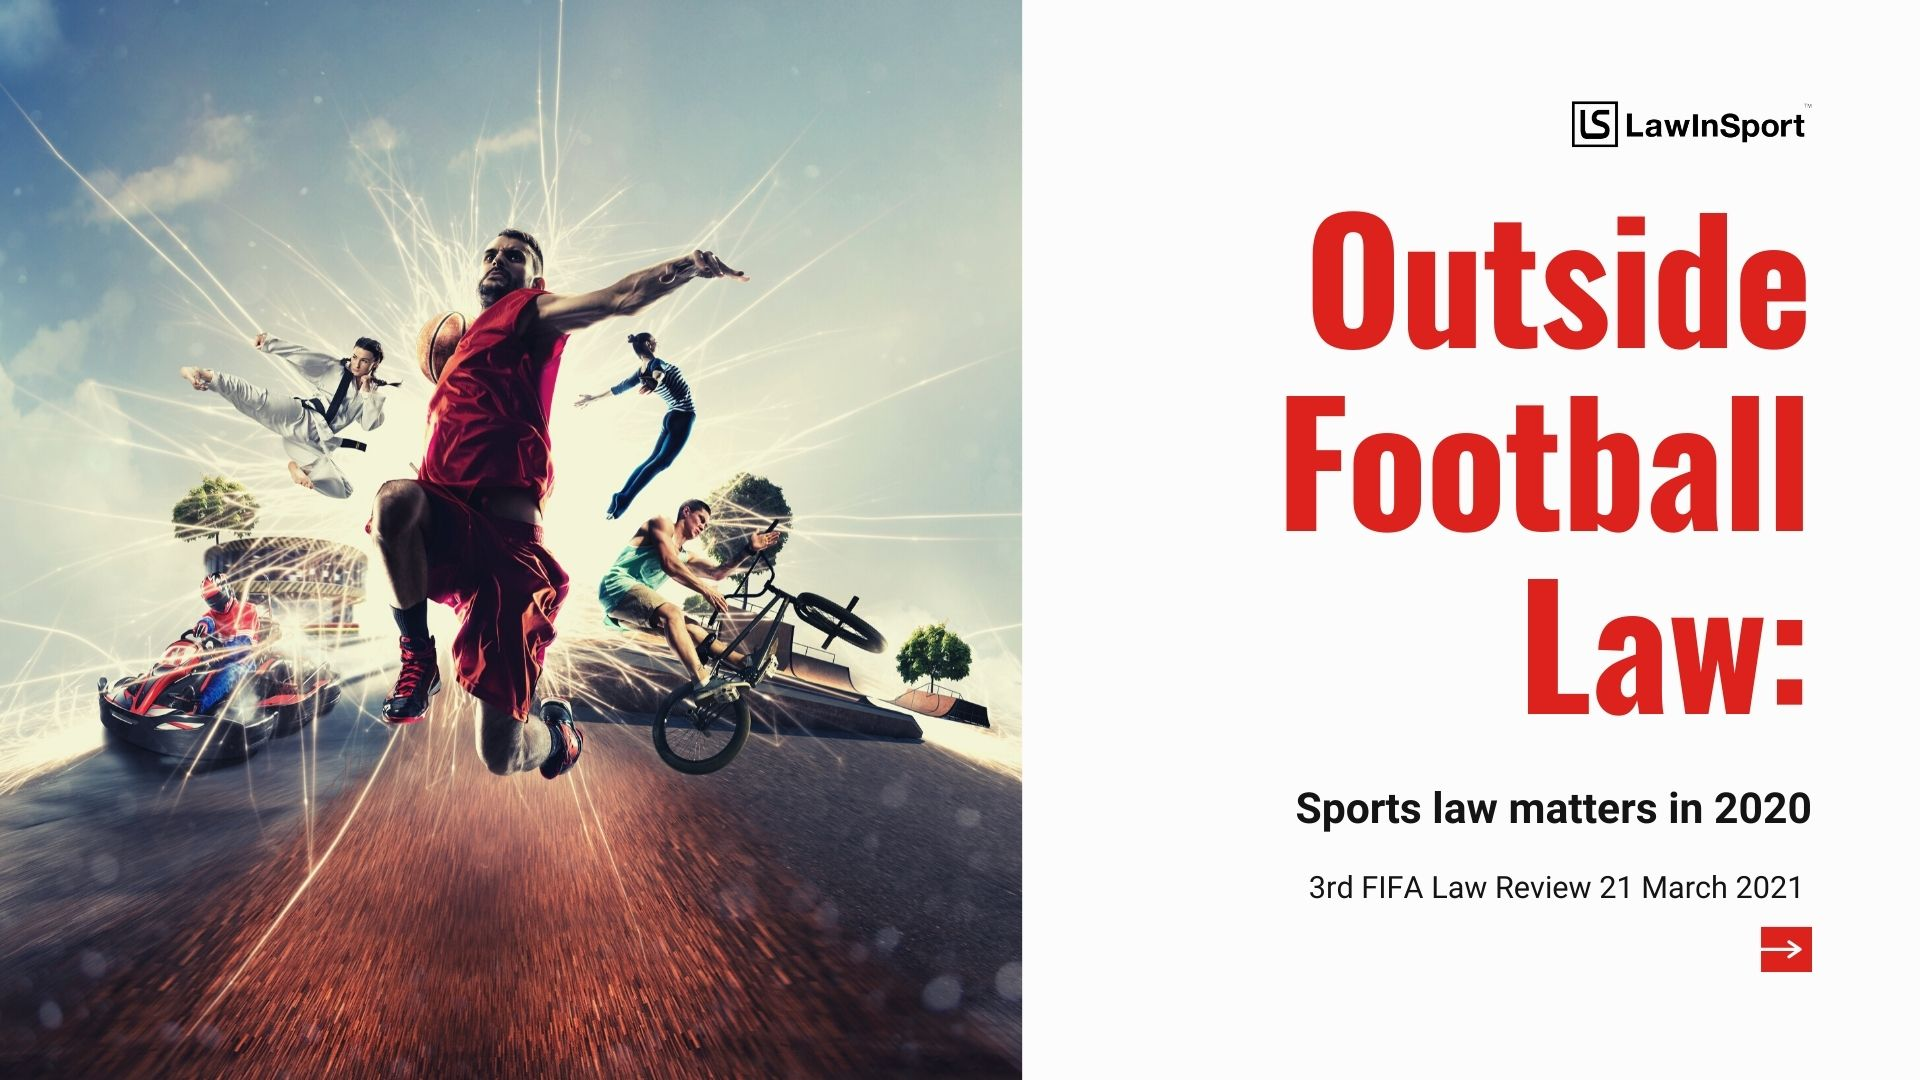 Outside Football Law 2020 - 3rd FIFA Law Review 21 March 2021